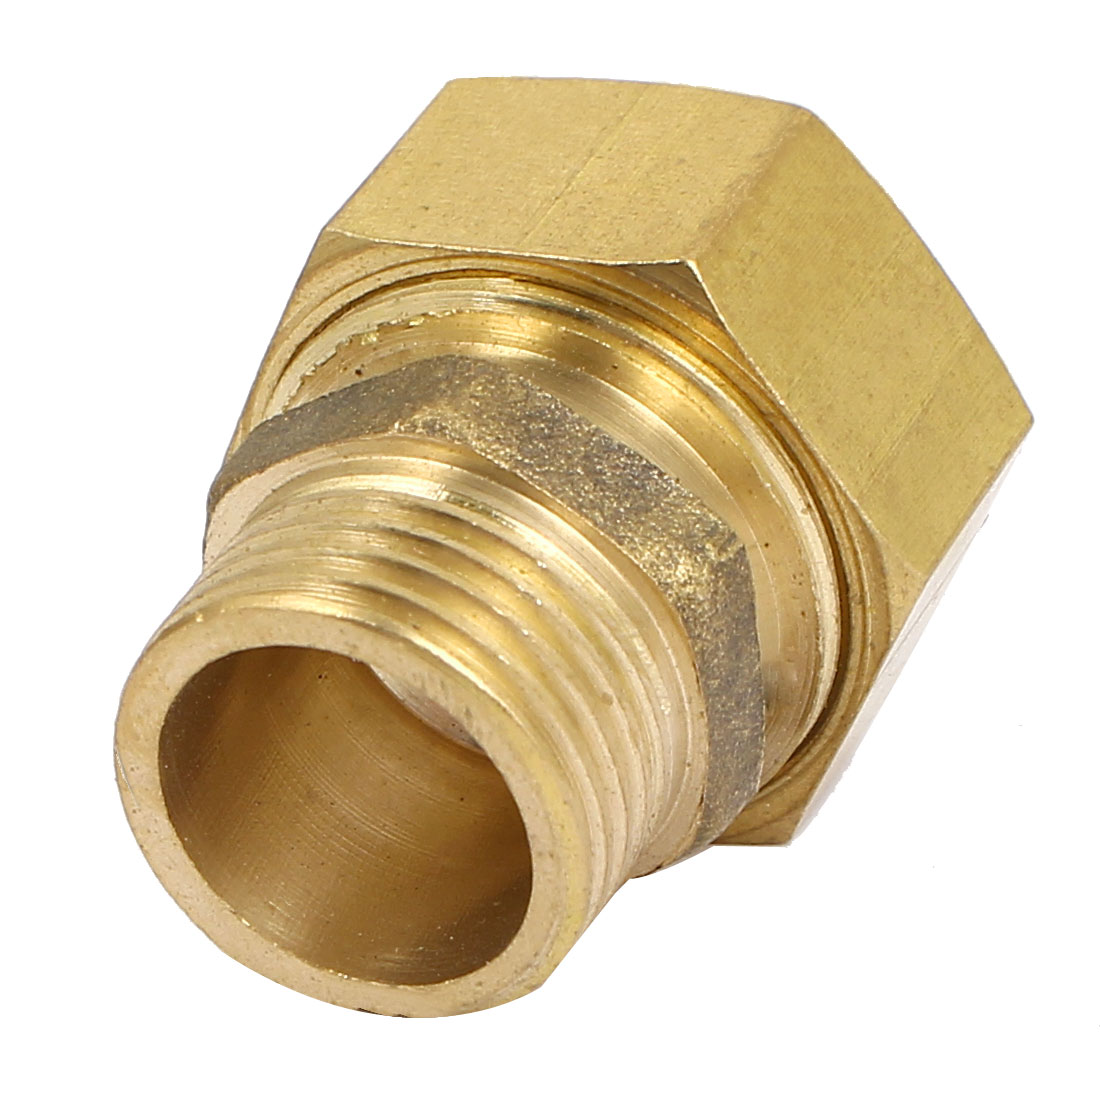 32mm x 25mm Threaded Brass Bushing Adapter Pipe Fitting Connector